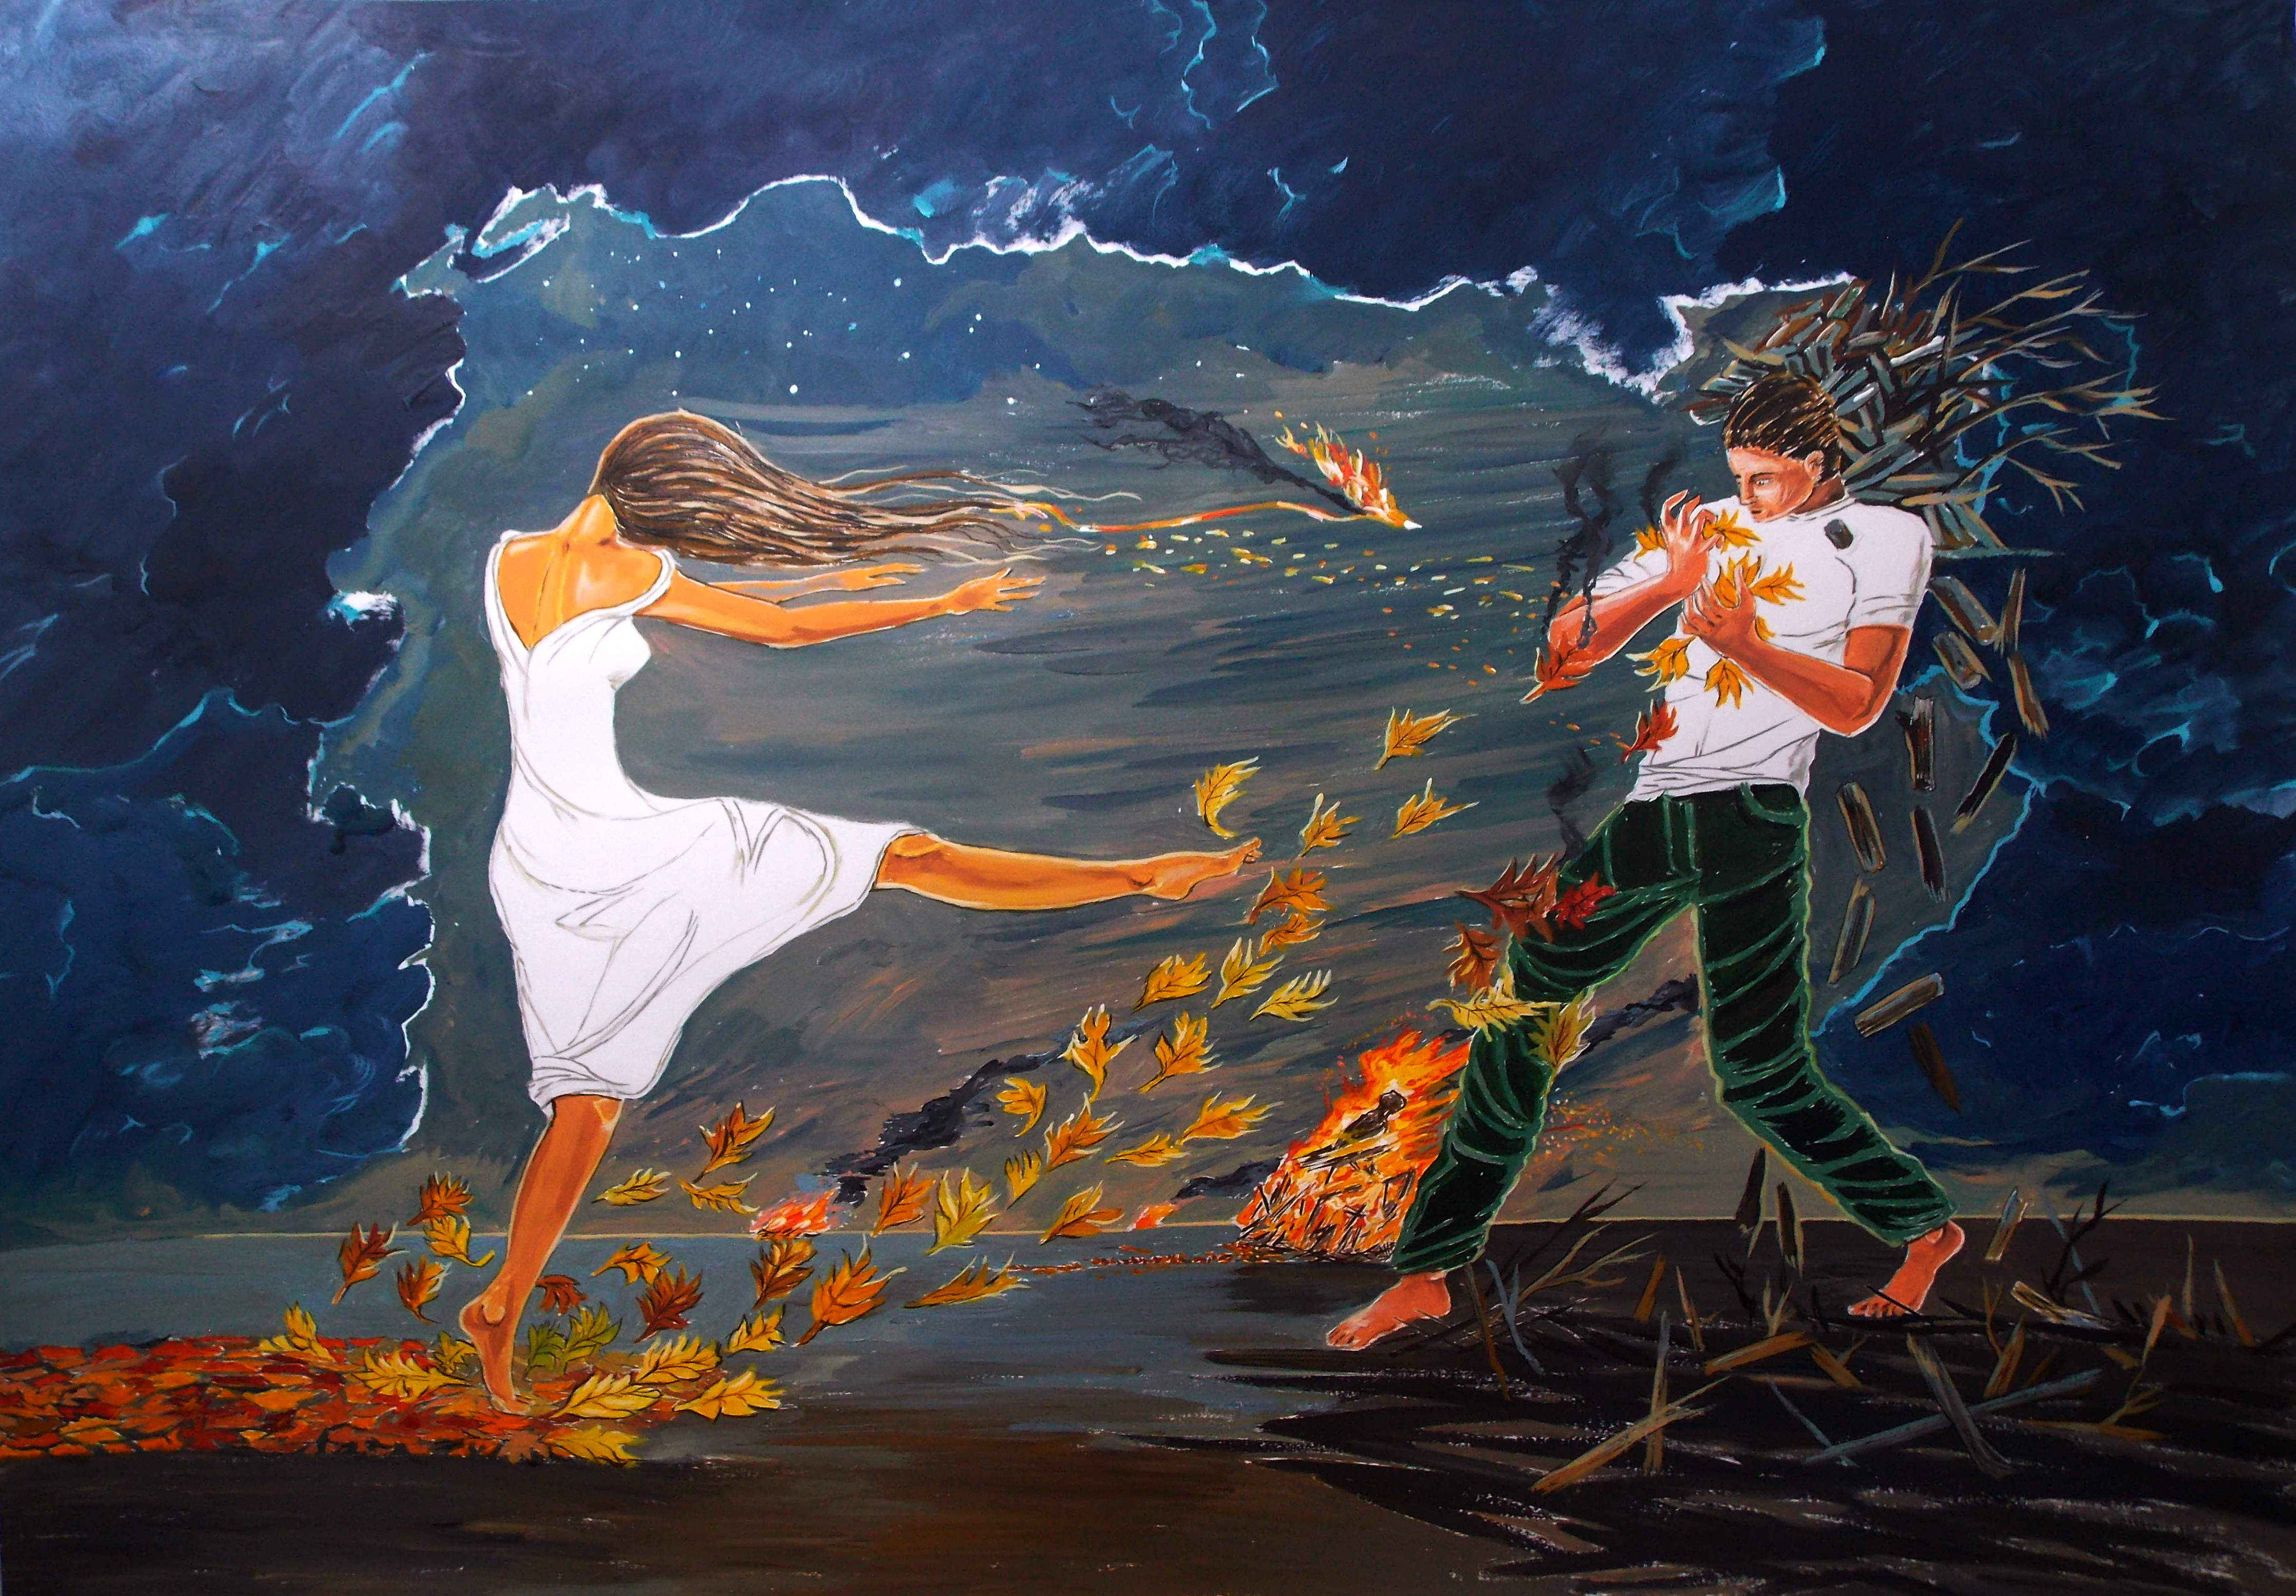 Lazaro Hurtado; Incendiary, 2016, Original Painting Acrylic, 100 x 70 cm. Artwork description: 241 Illustrated thoughtsLove, couple, woman, conceptual, expressionism, surrealism, ...